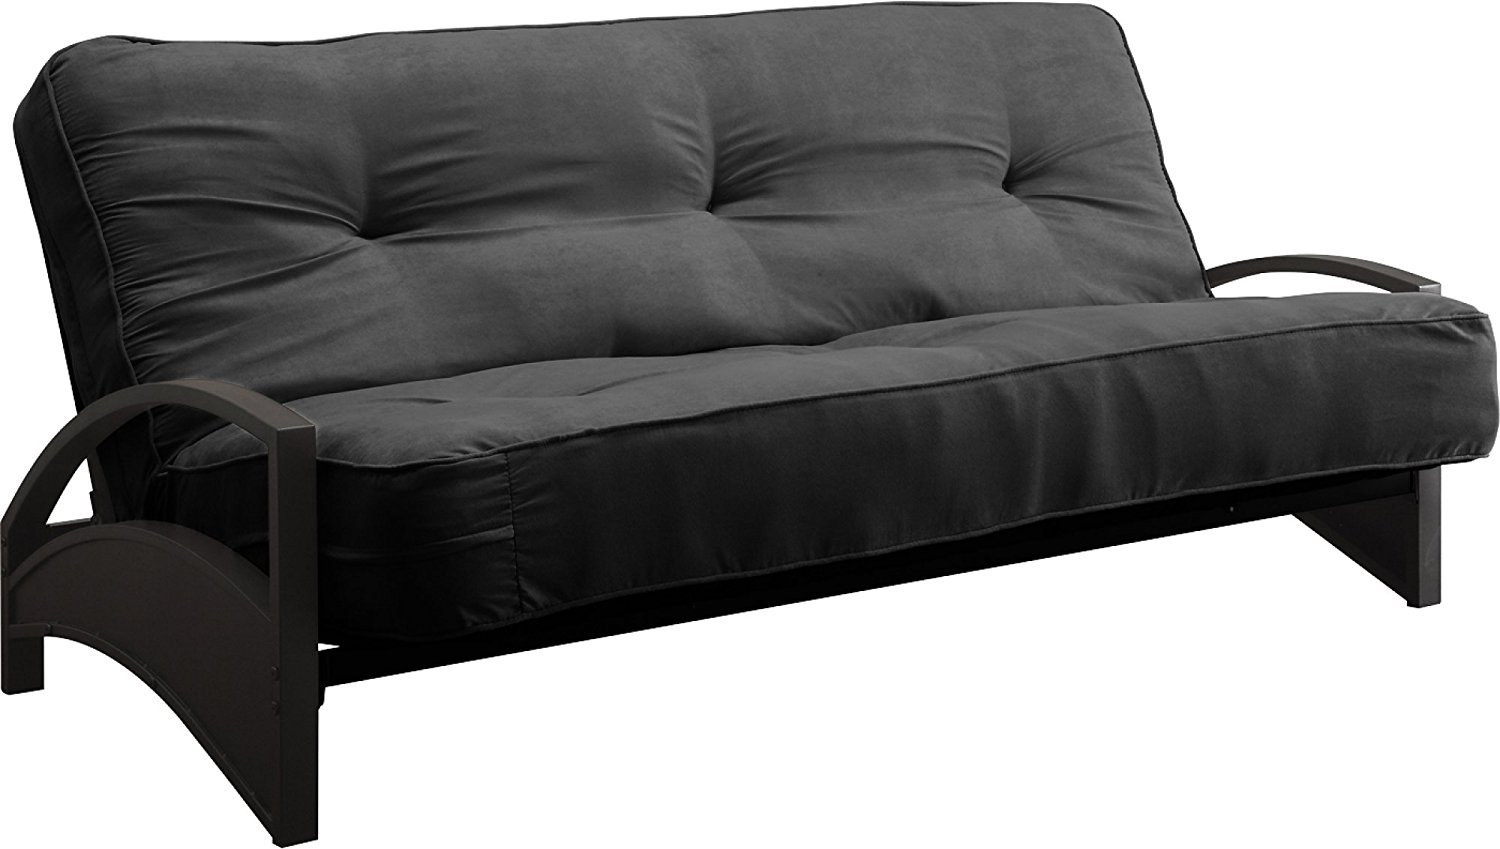 DHP Independently-Encased Coil Premium Futon Mattress